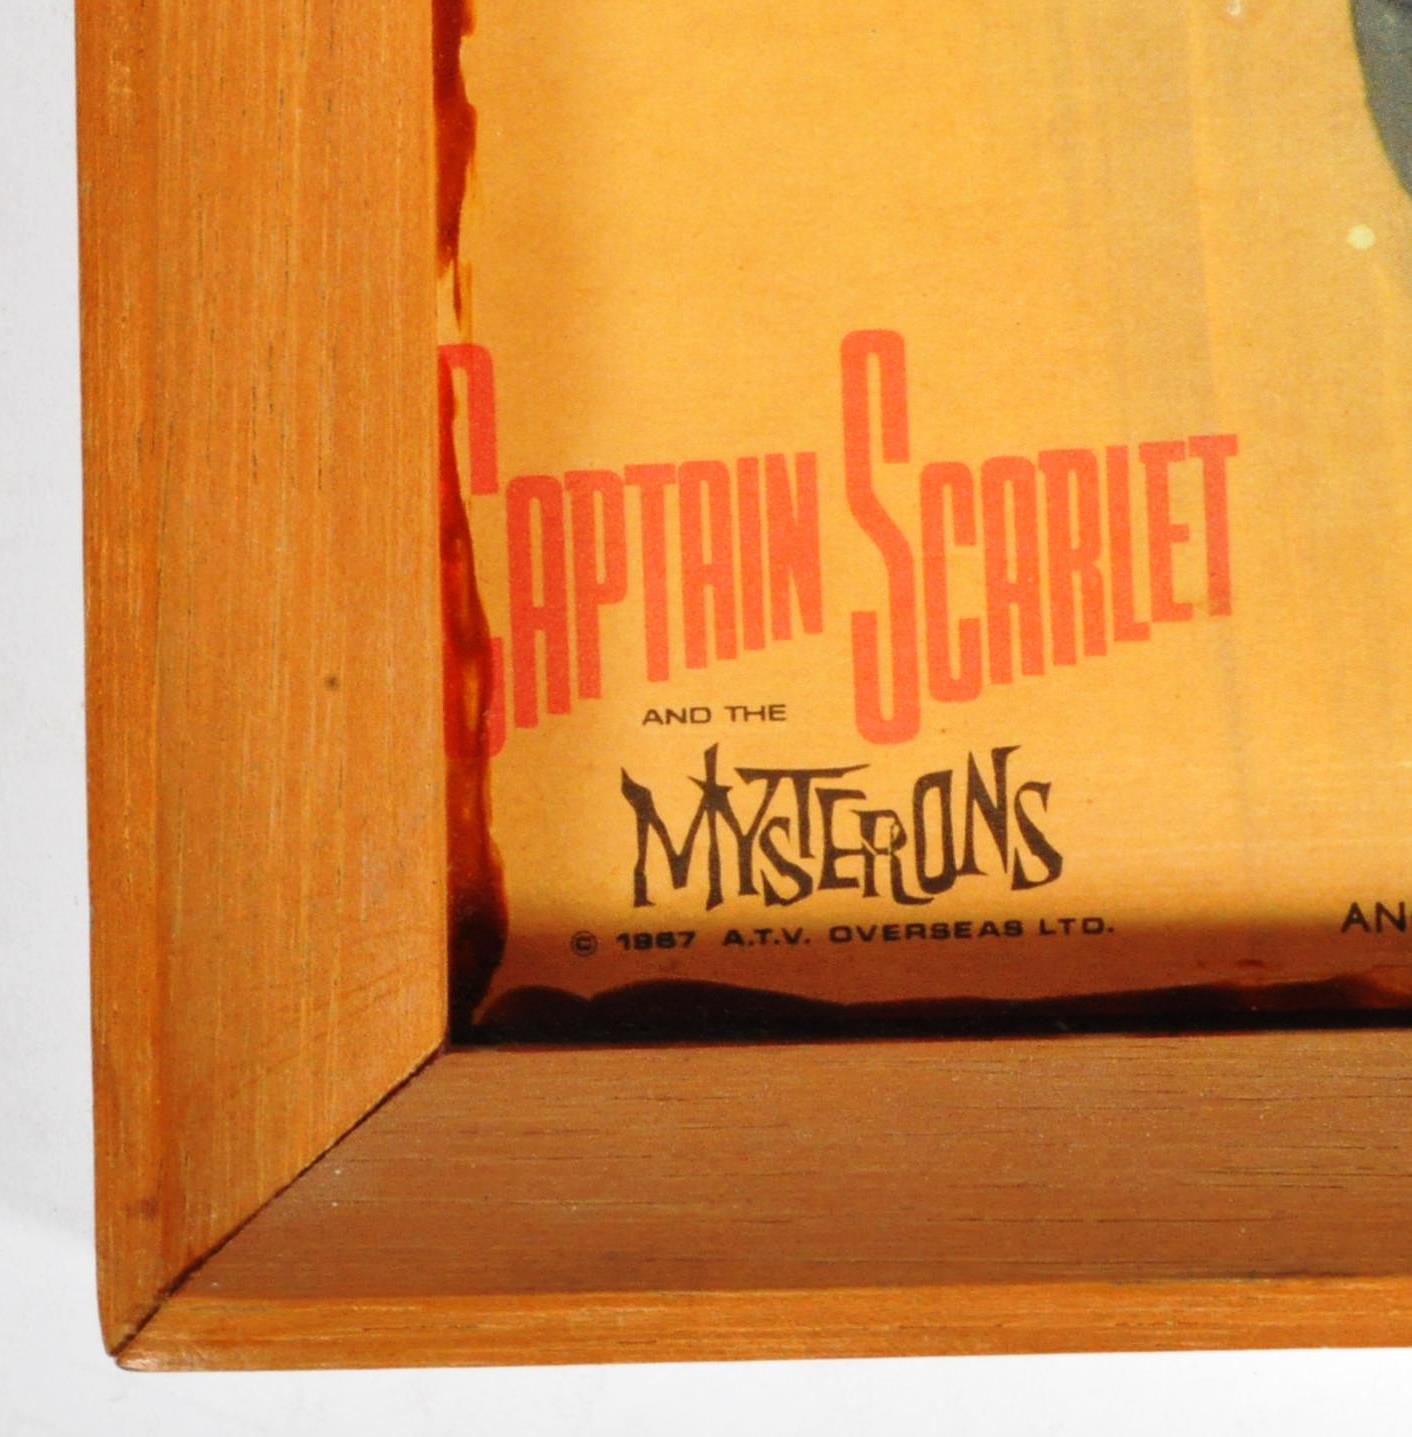 RARE CAPTAIN SCARLET ANGLO CONFECTIONERY SHOP DISPLAY POSTER BOARD - Image 8 of 9